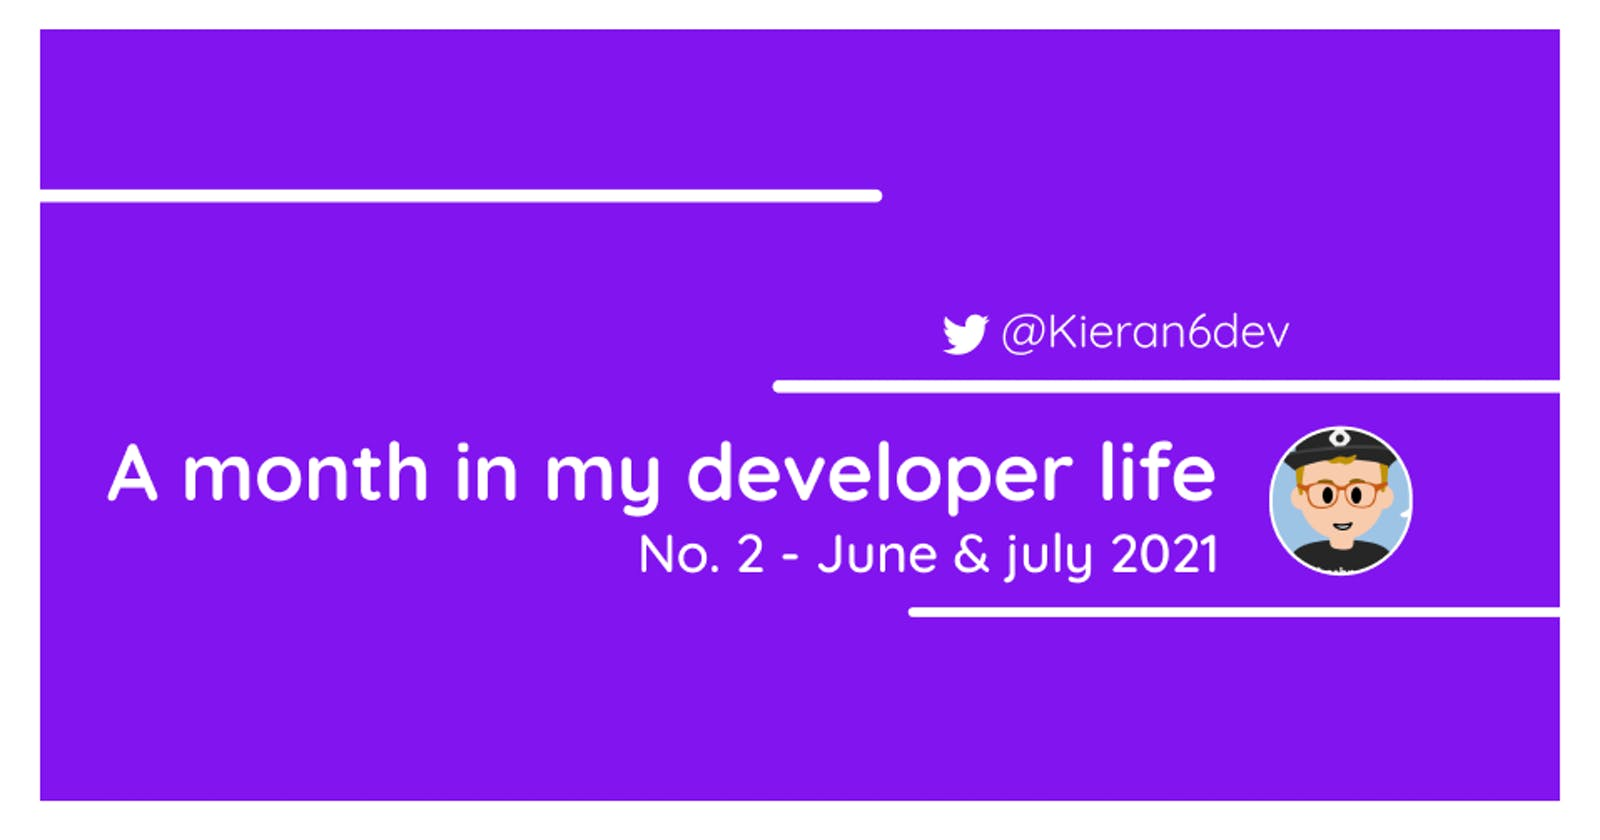 A month in my developer life: No.2 - June & July 2021